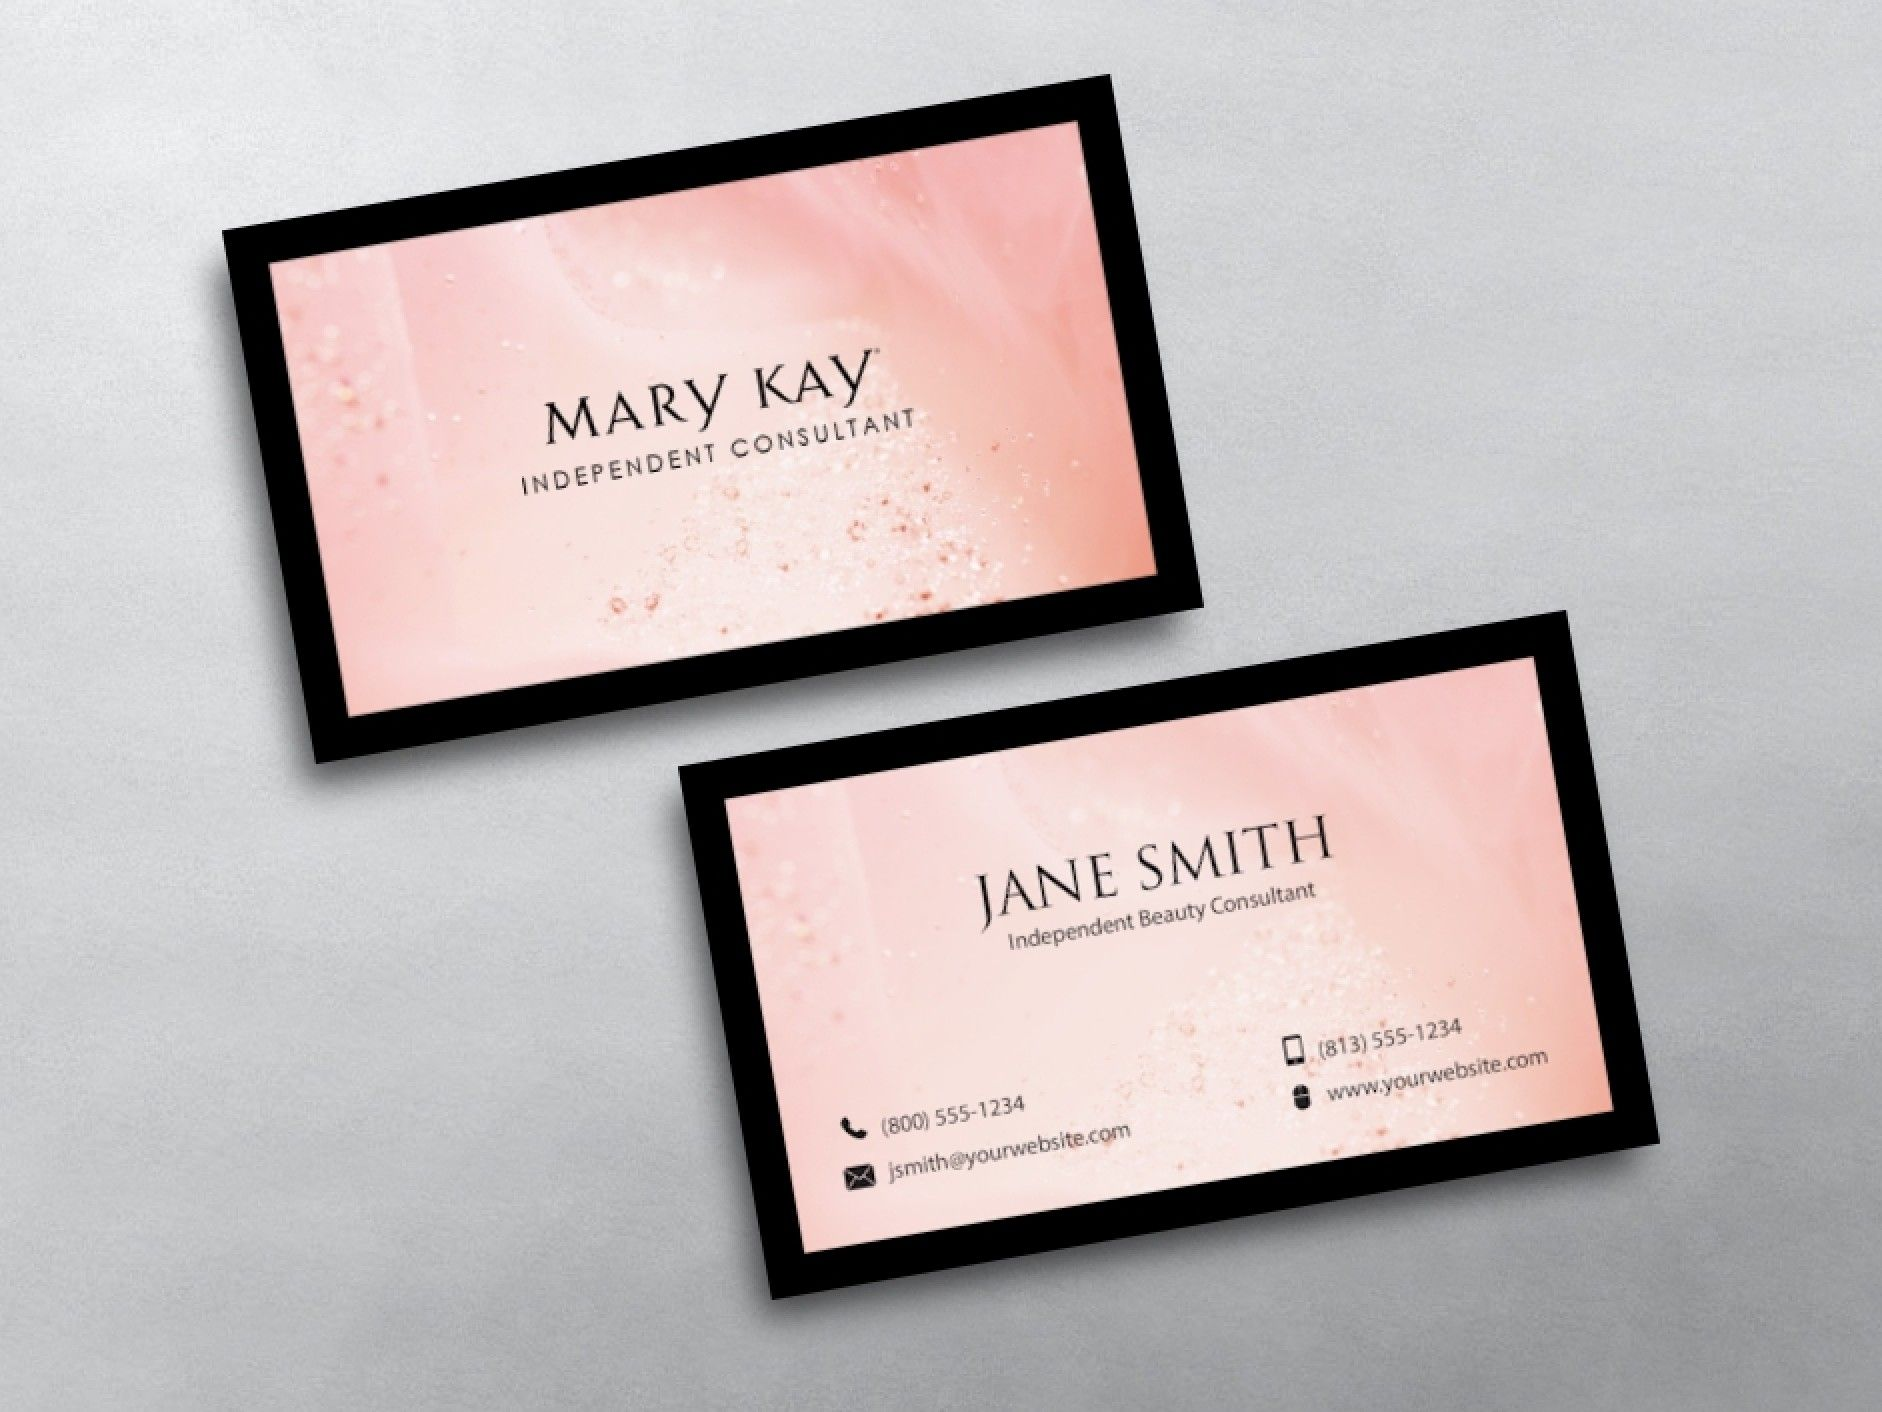 Mary kay business cards pinterest beauty consultant and mary kay custom mary kay business card printing for mary kay independent beauty consultants design print business card template online colourmoves